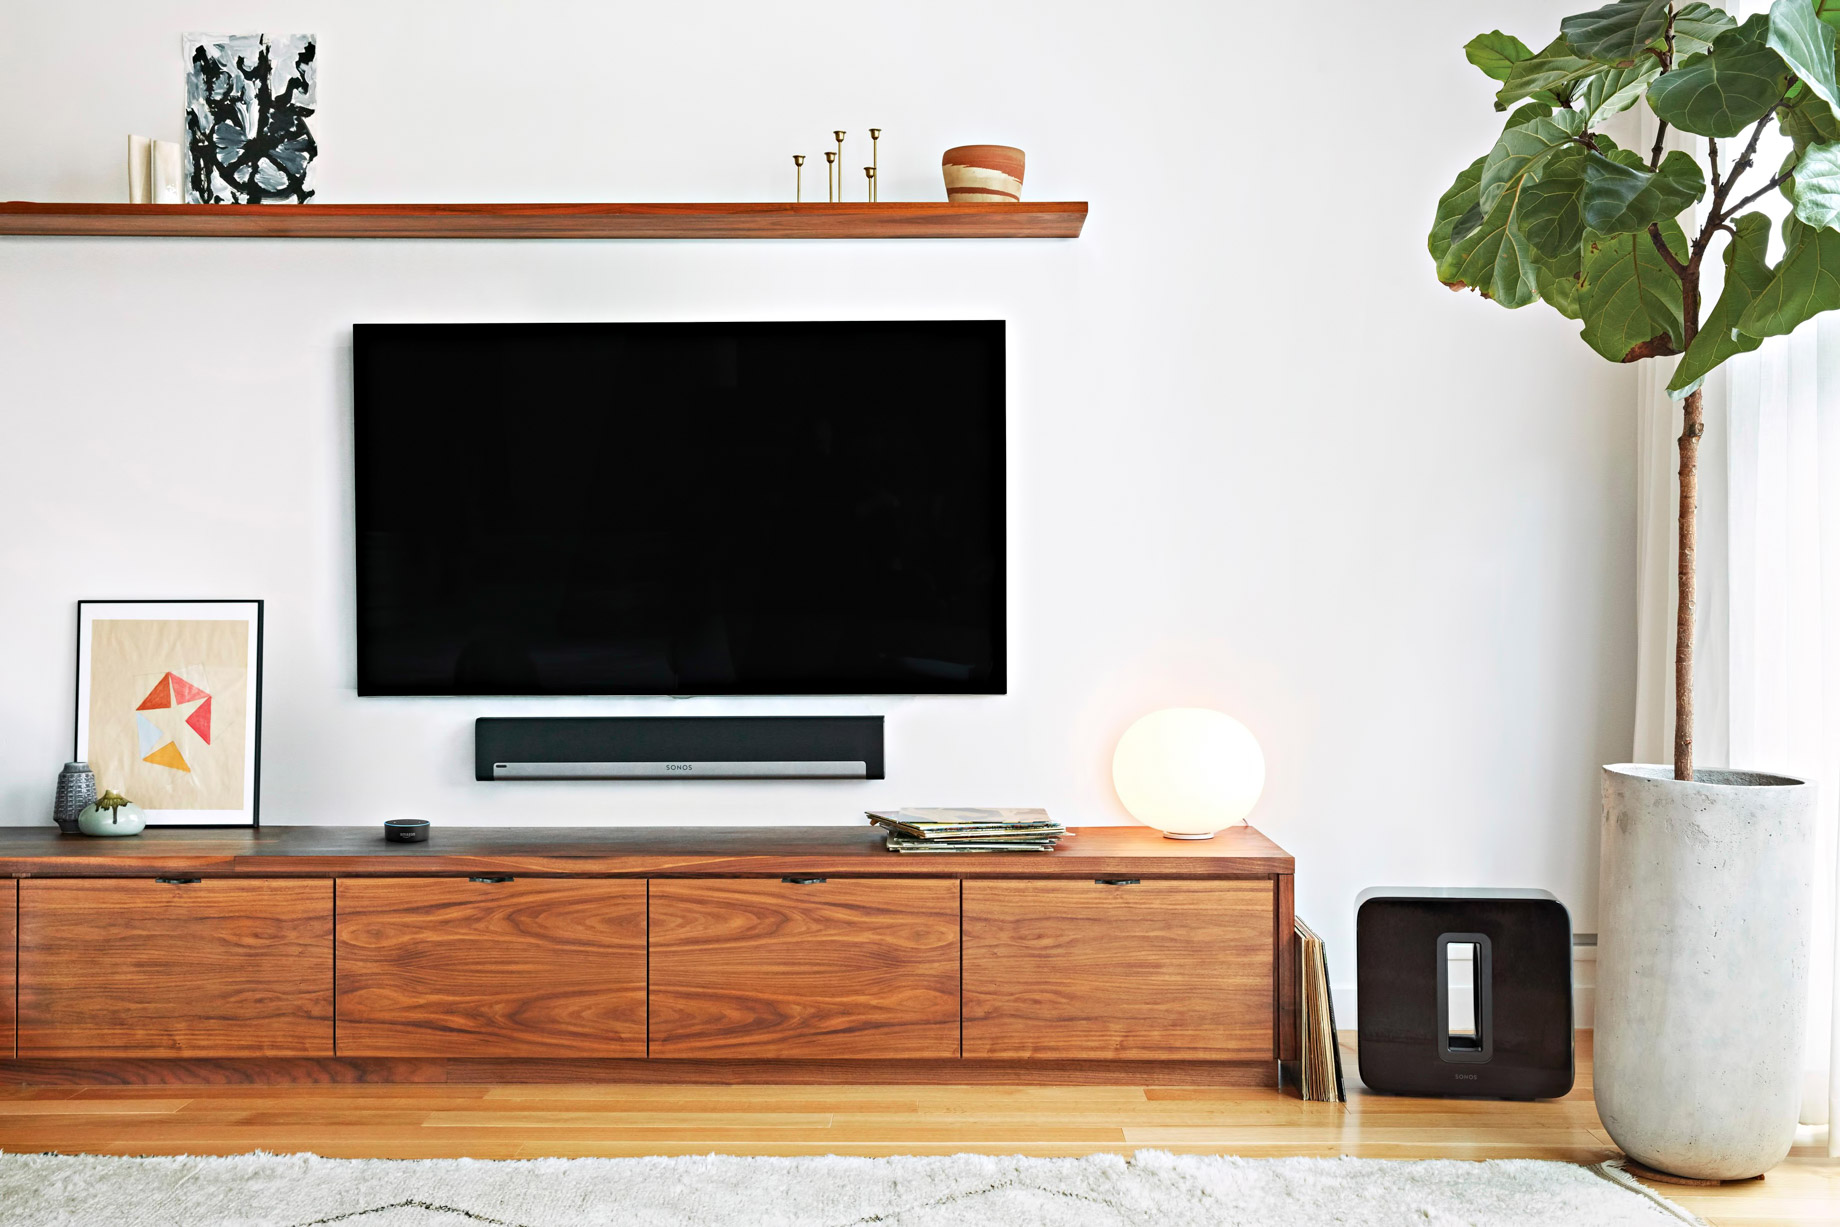 Sound Bar - New Home Trends - Ideal Luxury Products For Your House This Winter